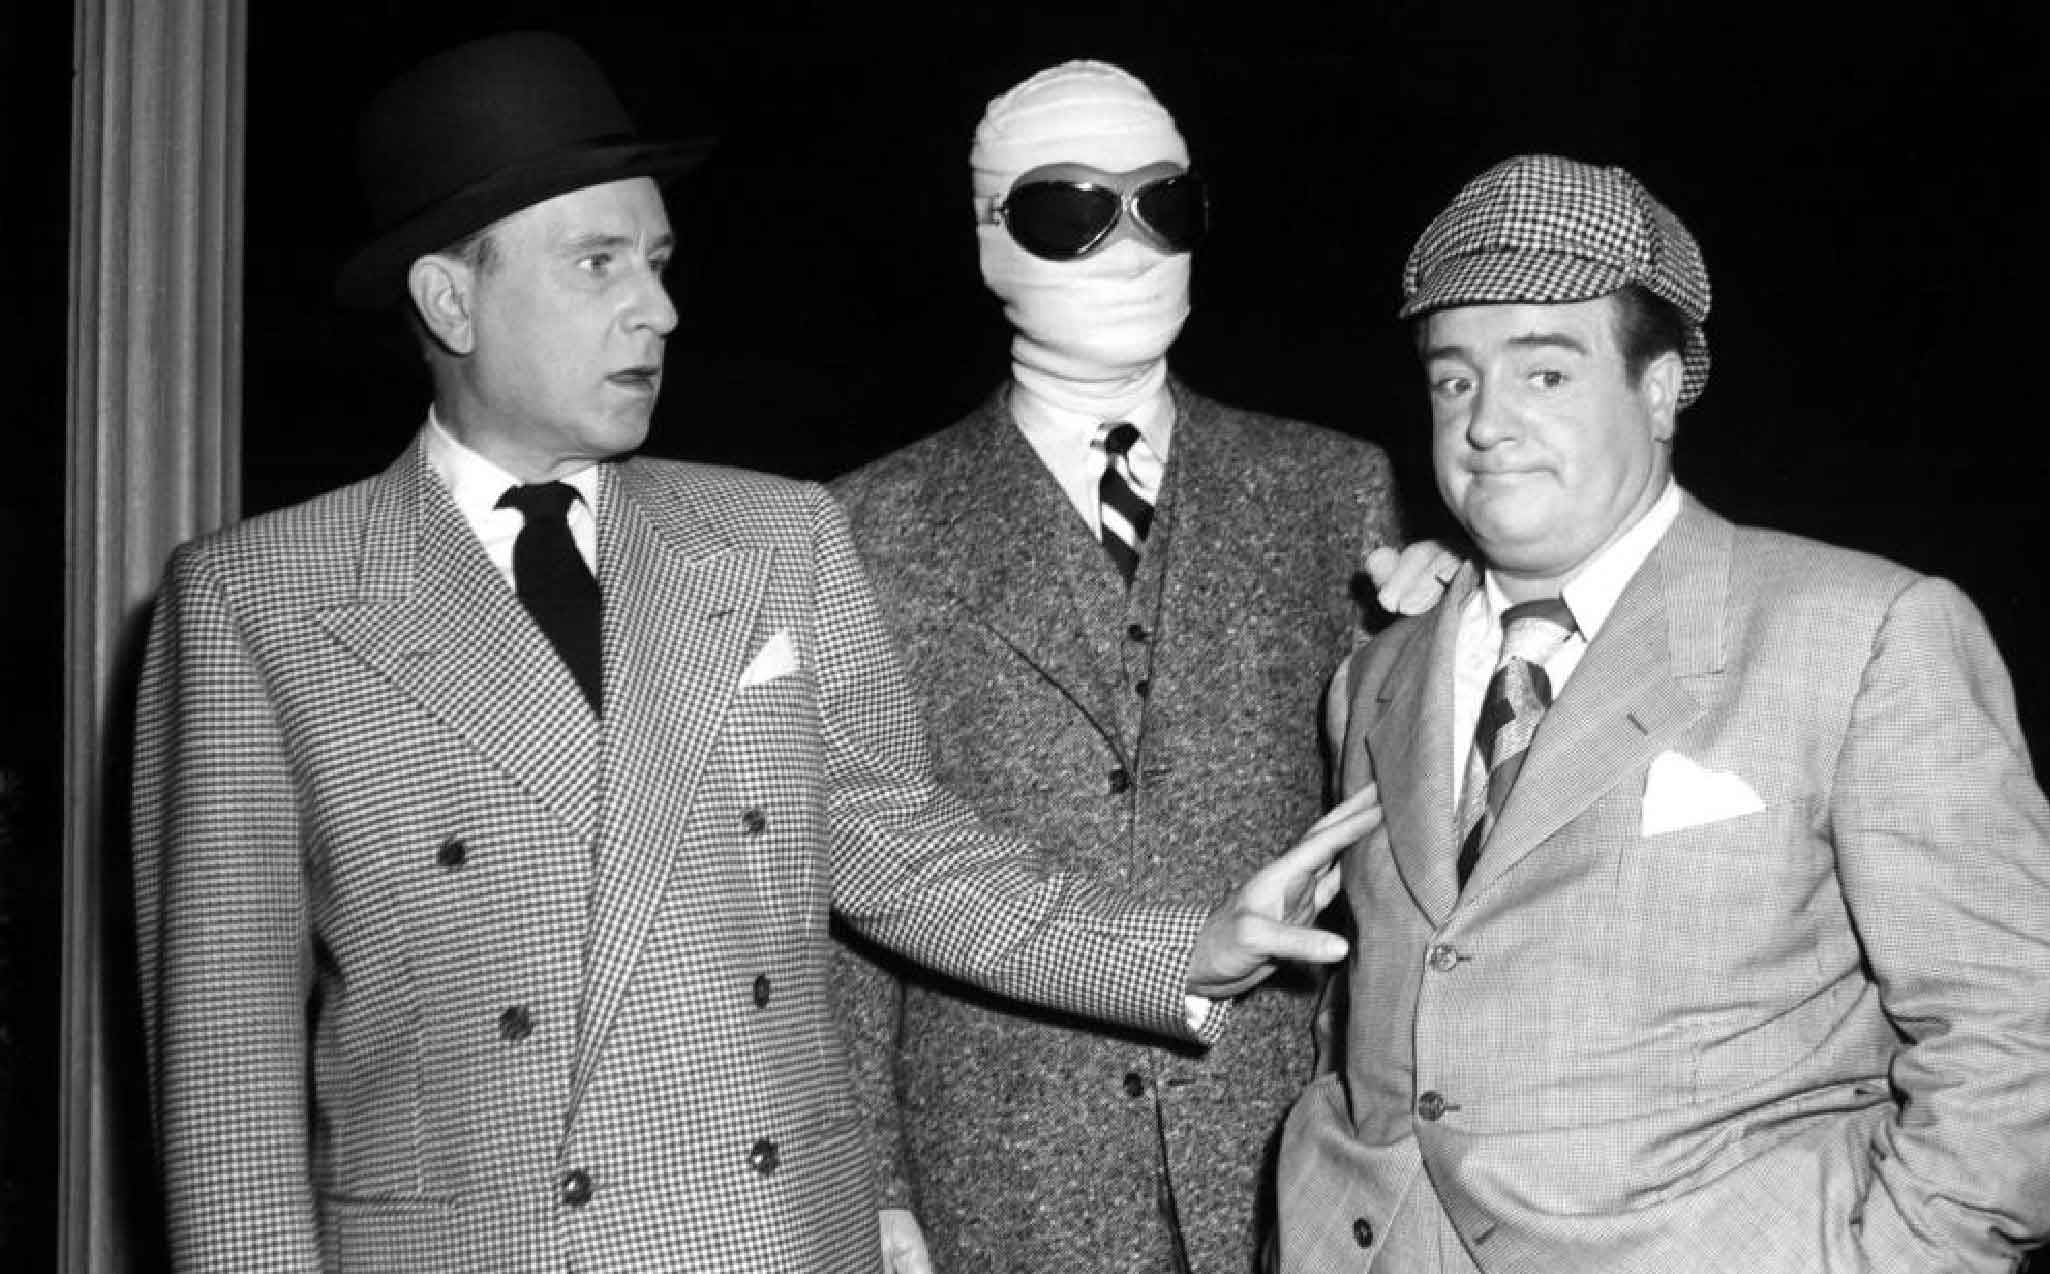 (l to r) Bud Abbott, The Invisible Man (Arthur Franz) and Lou Costello in Abbott and Costello Meet the Invisible Man (1951)